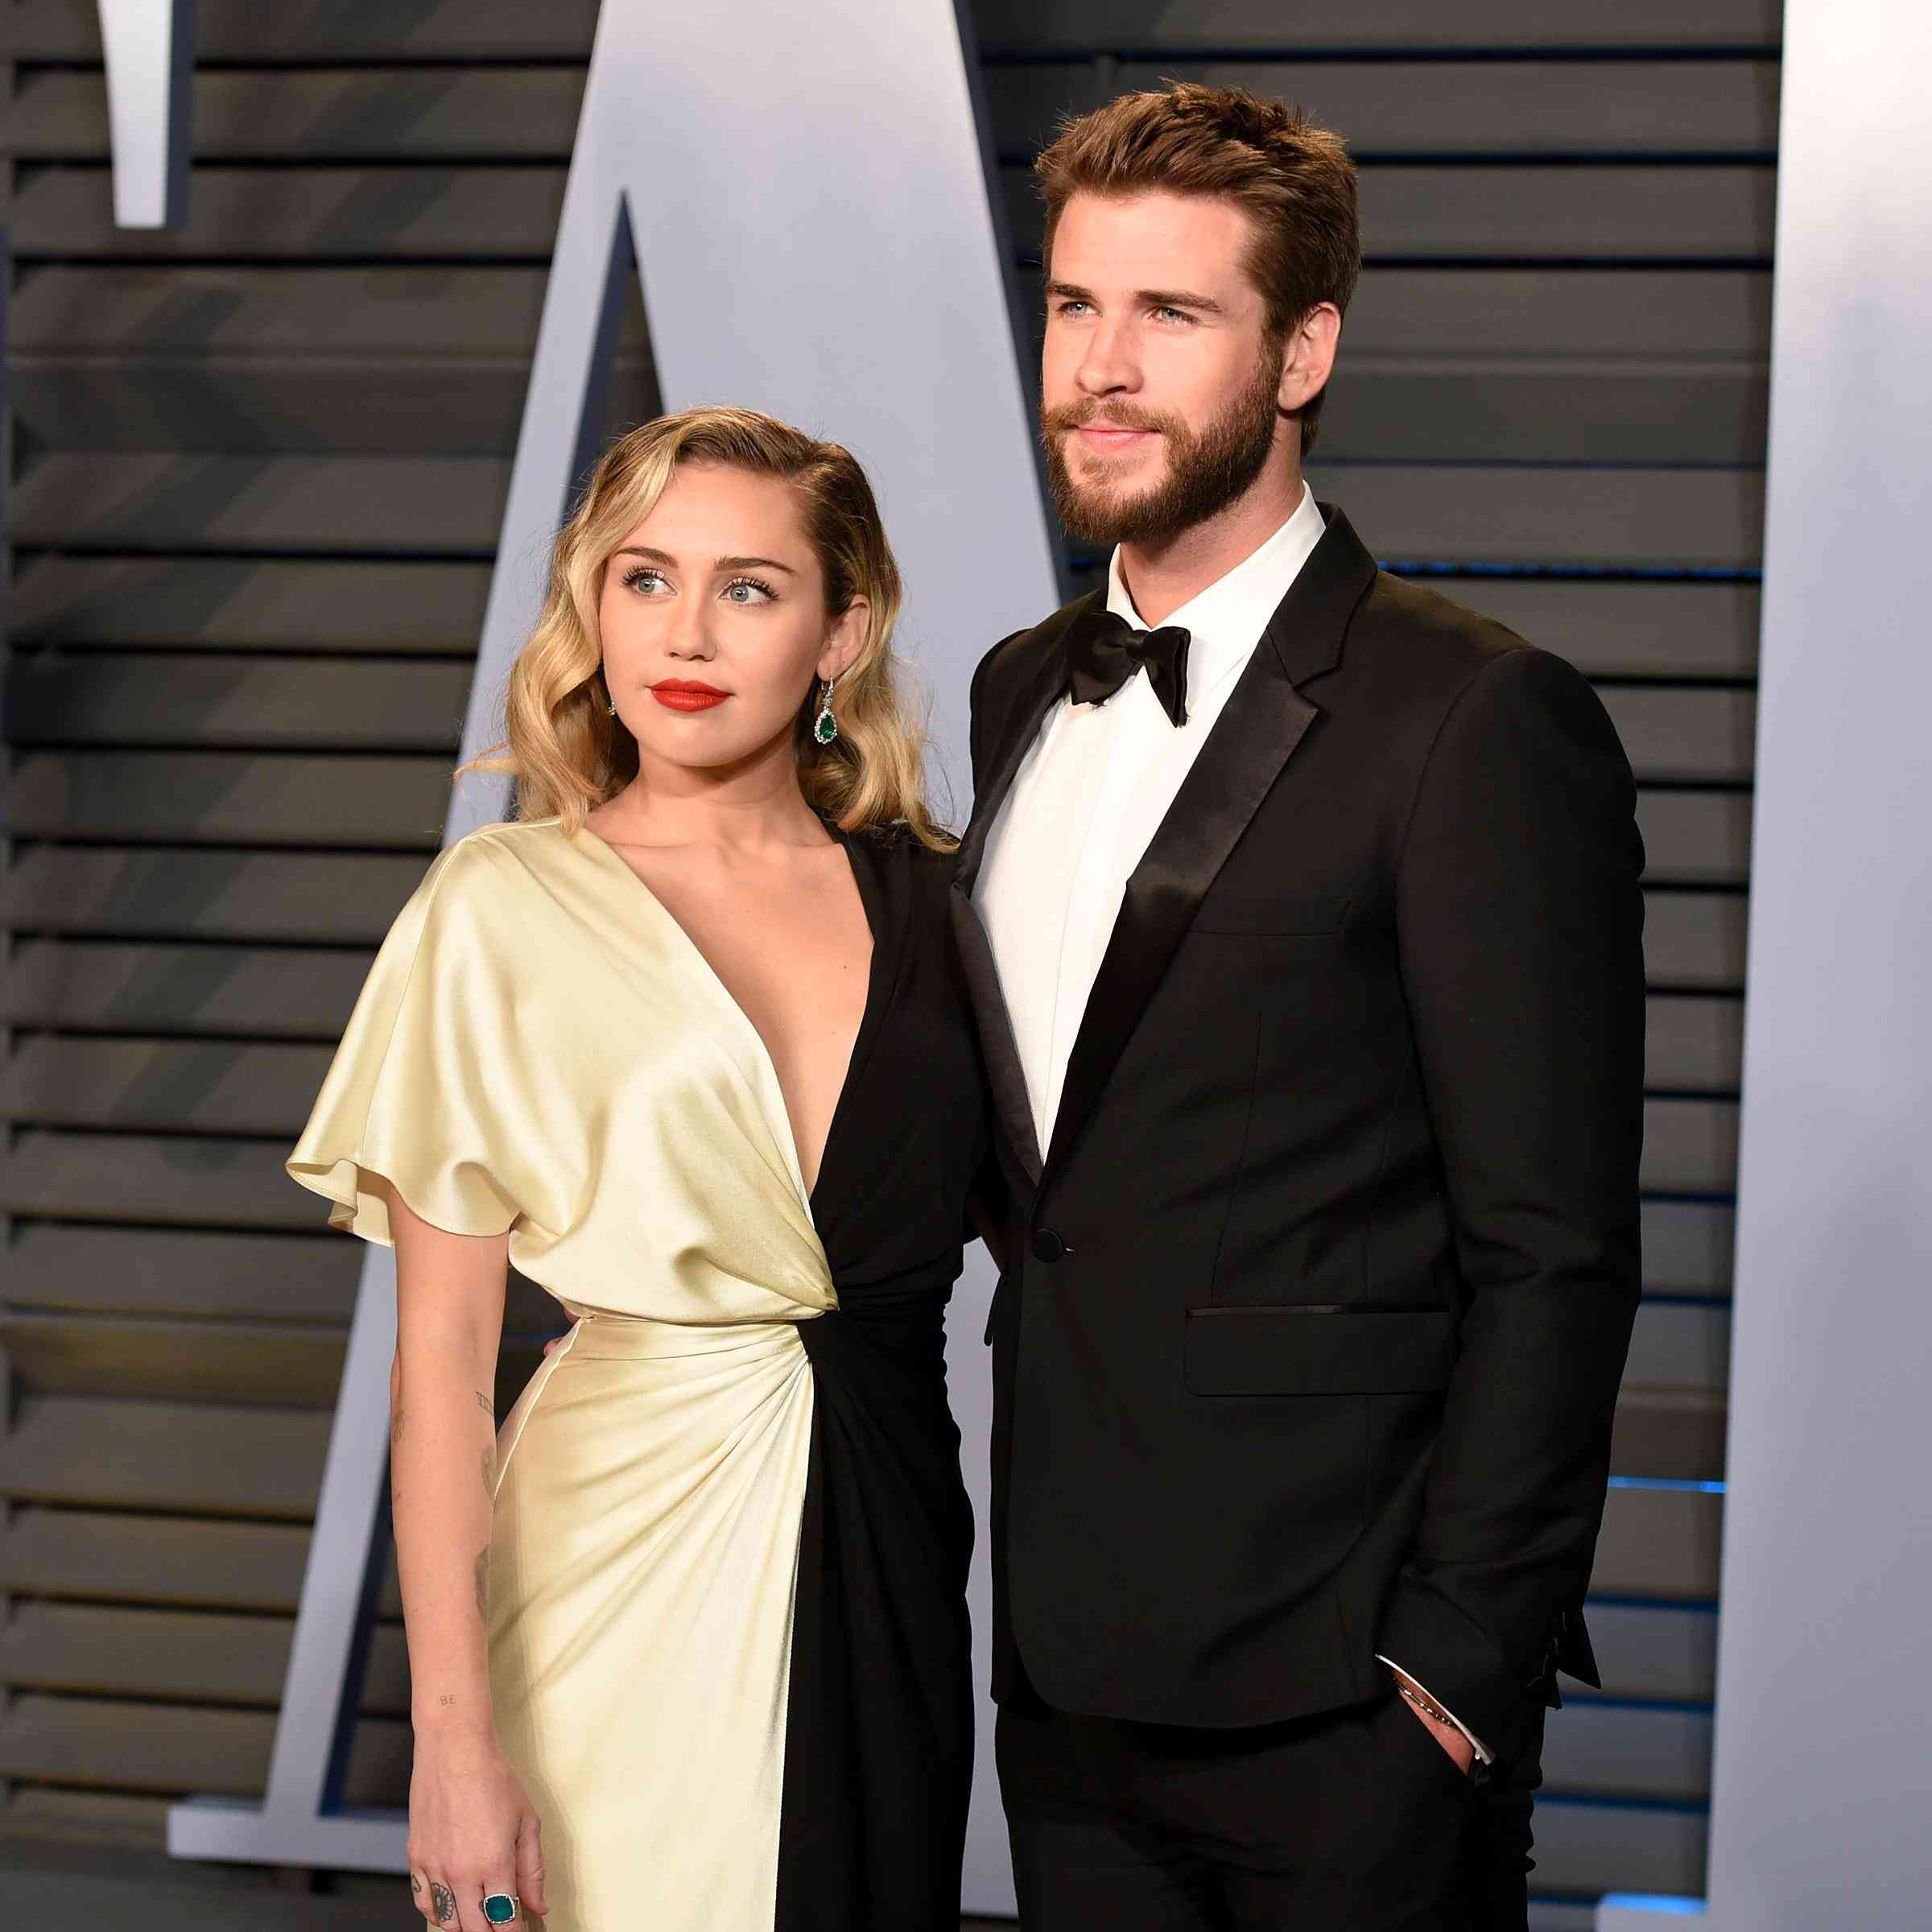 Miley Cyrus Wedding.All The Details From Miley Cyrus And Liam Hemsworth S Intimate Wedding